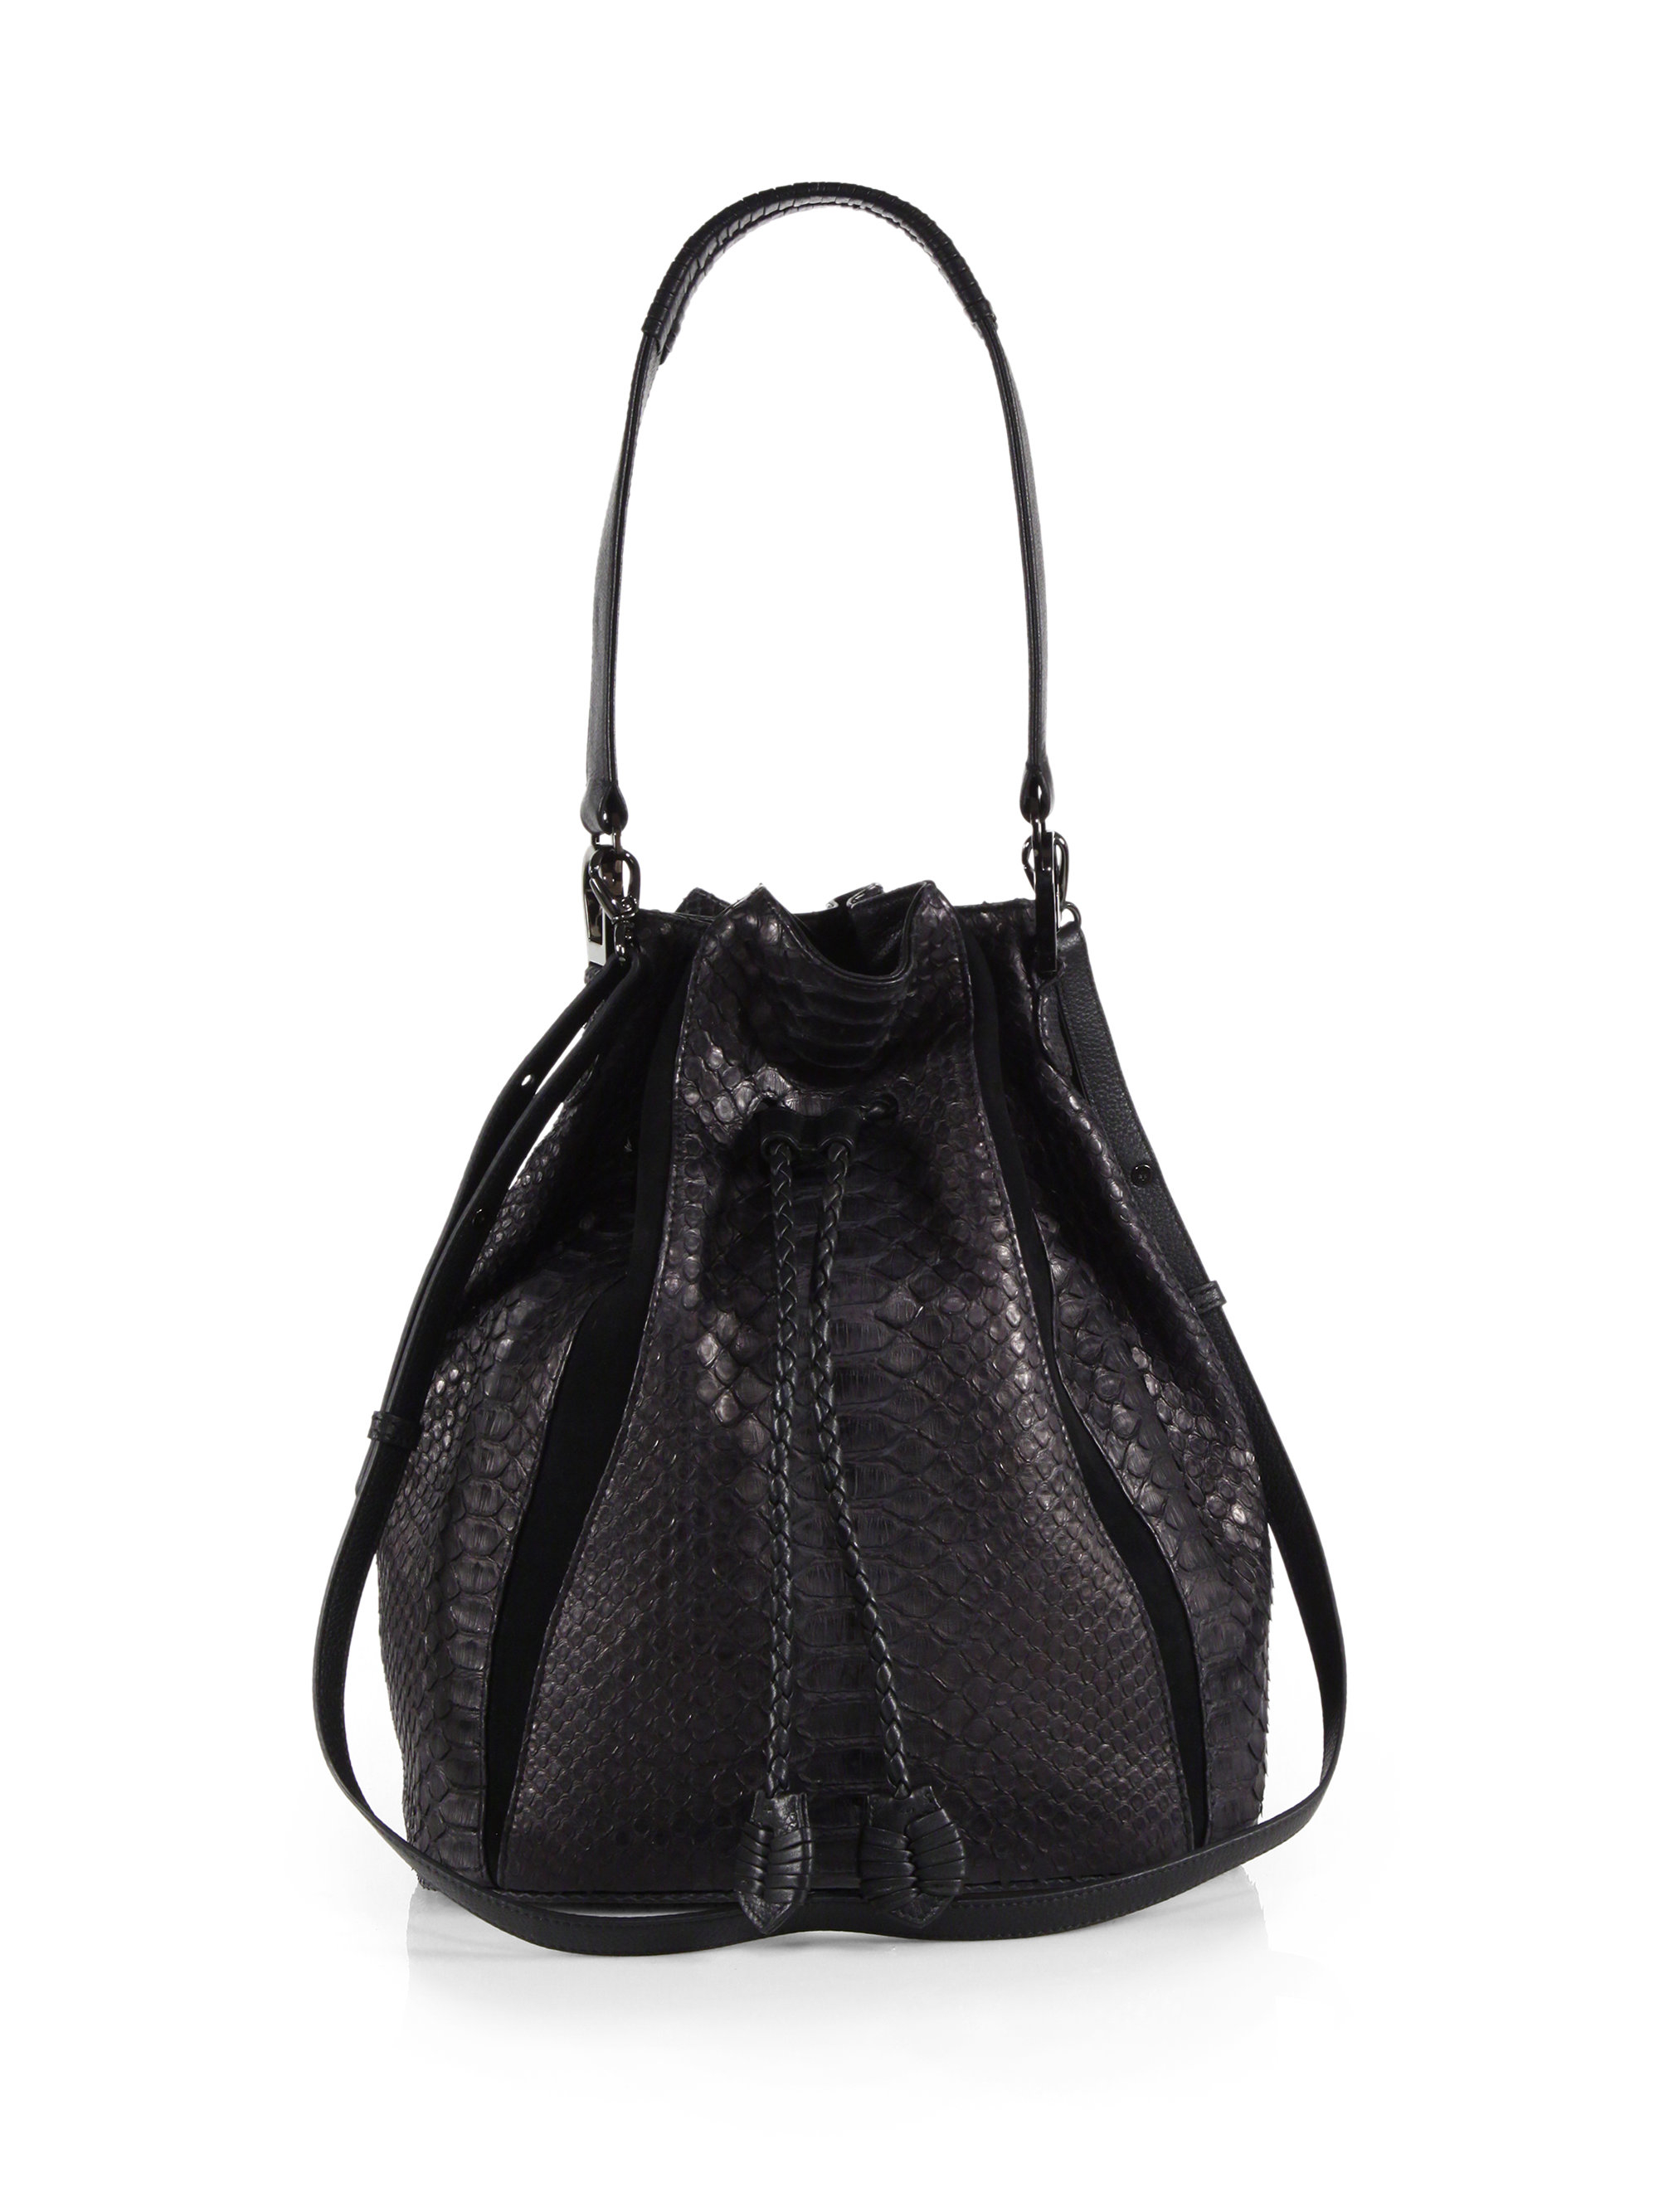 celine mini bucket bag